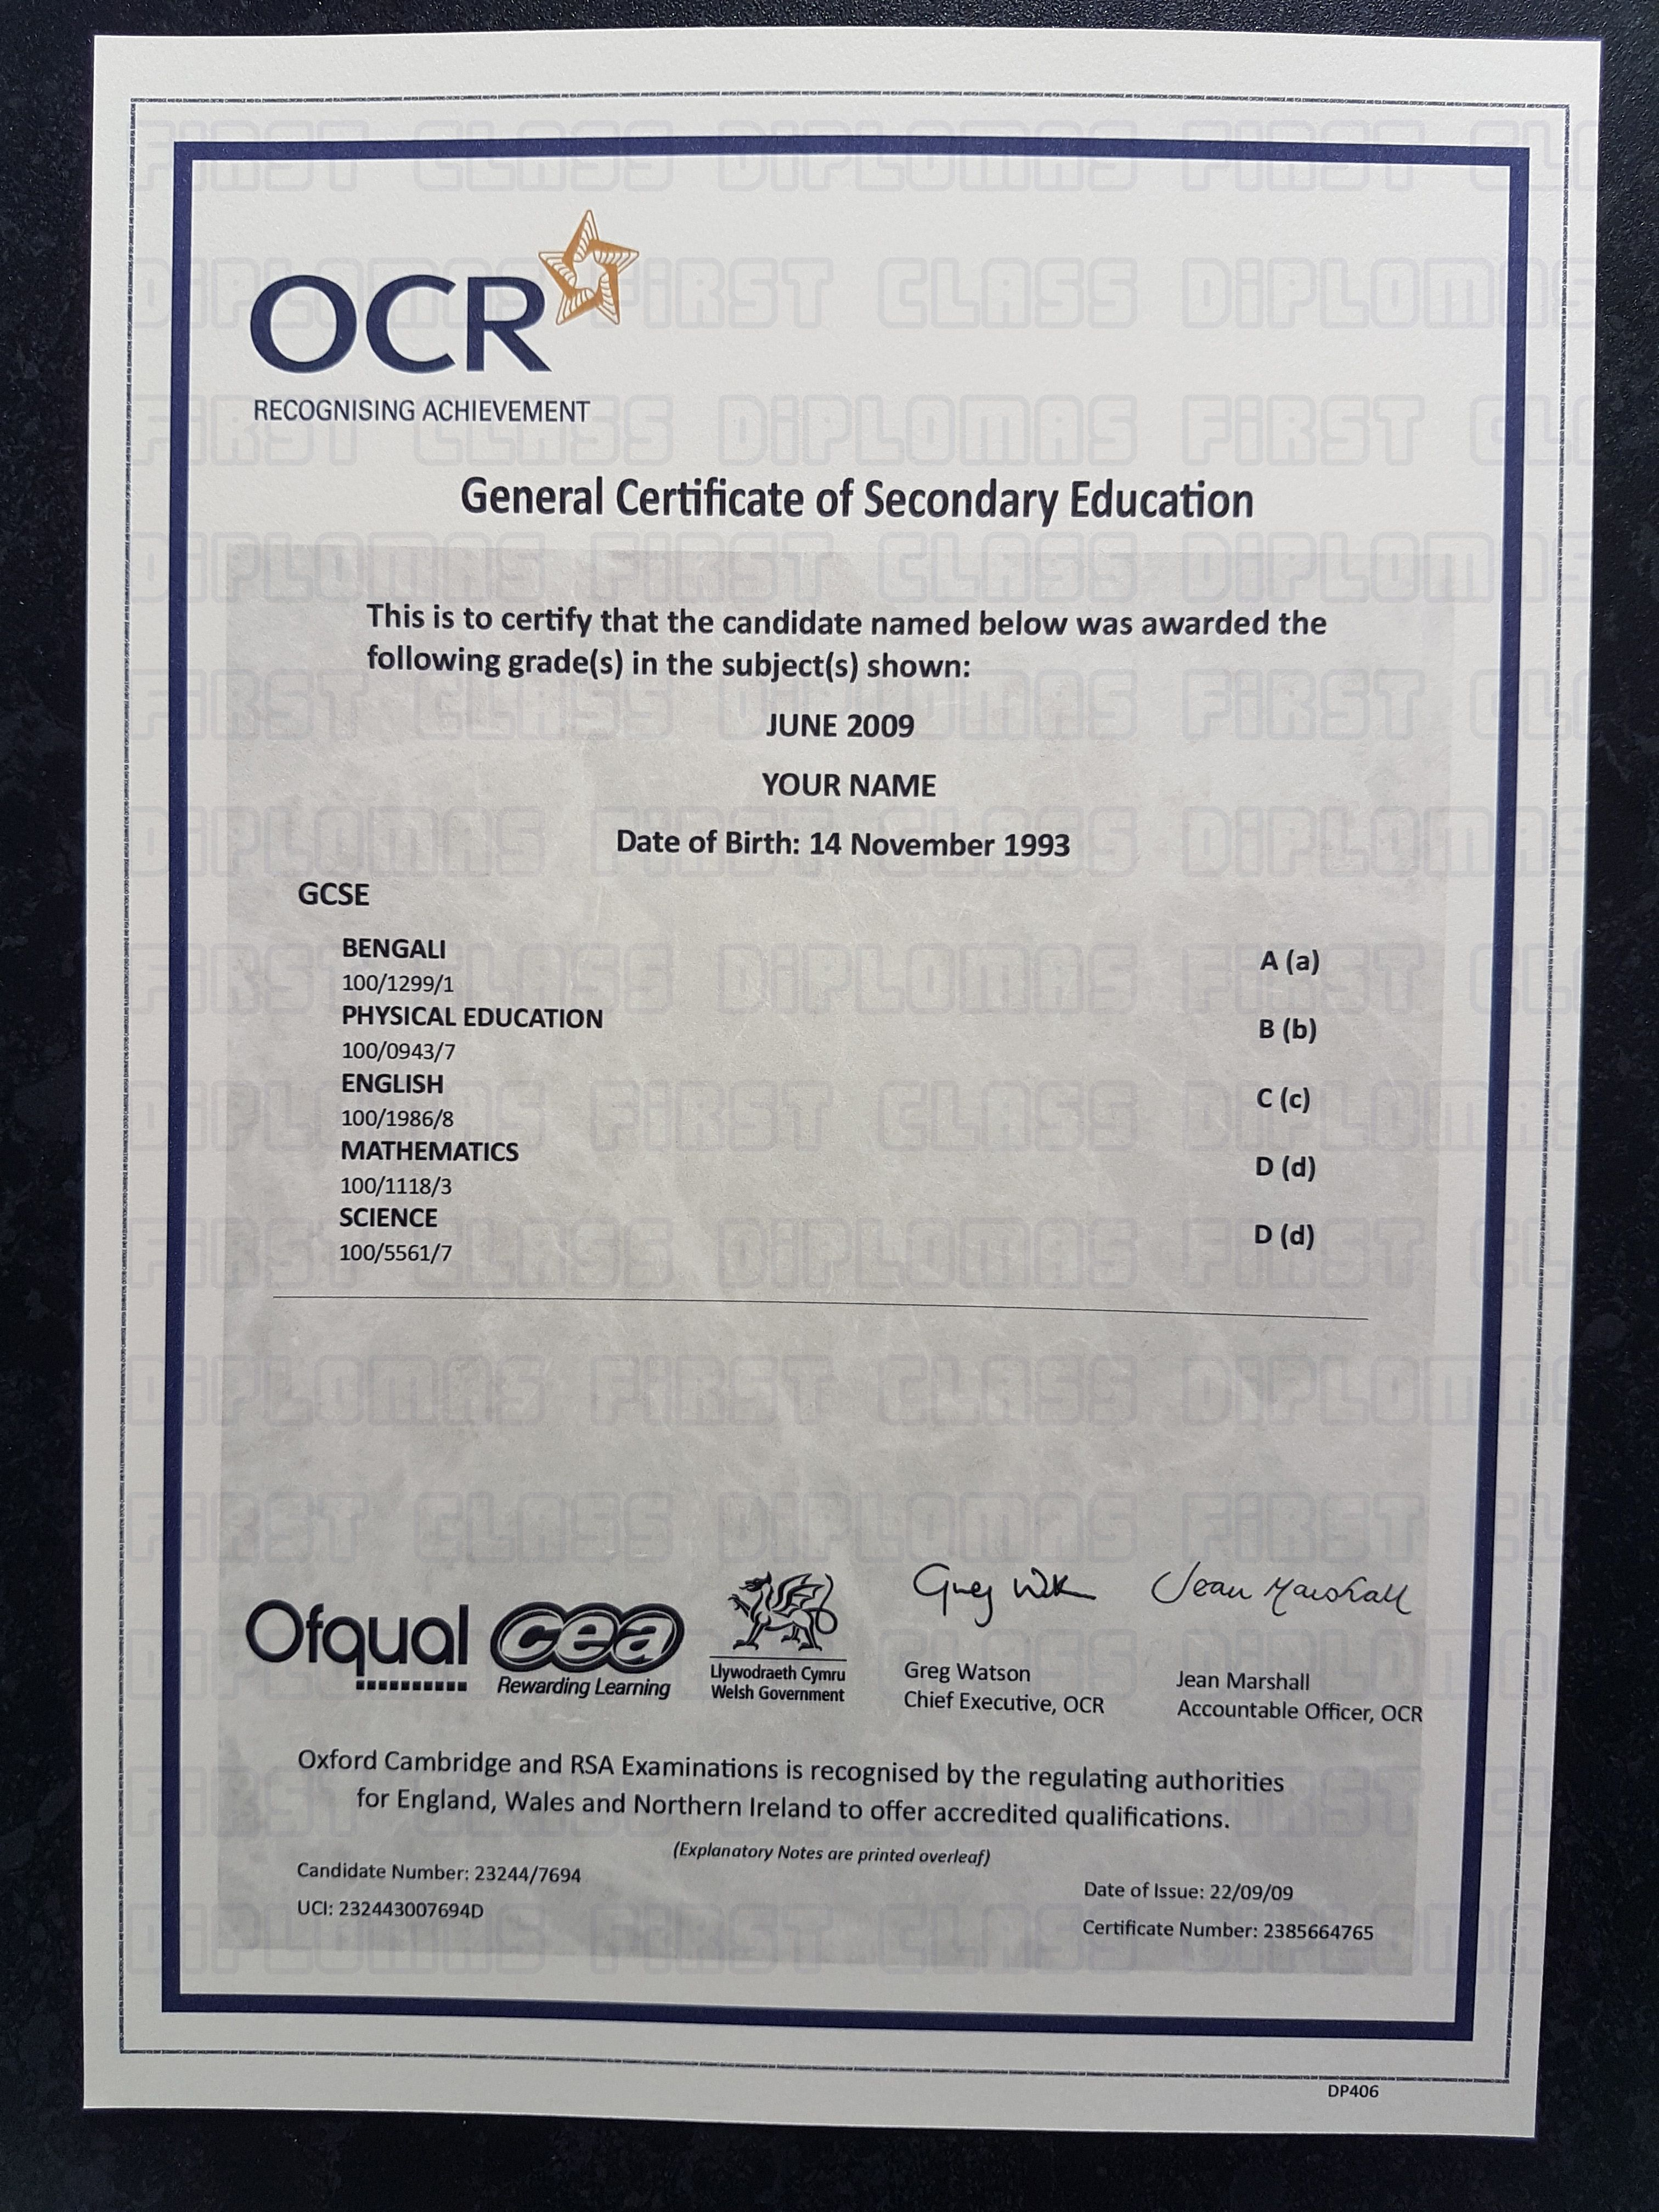 Realistic Gcse Certificate Template Free Worldwide Delivery Please